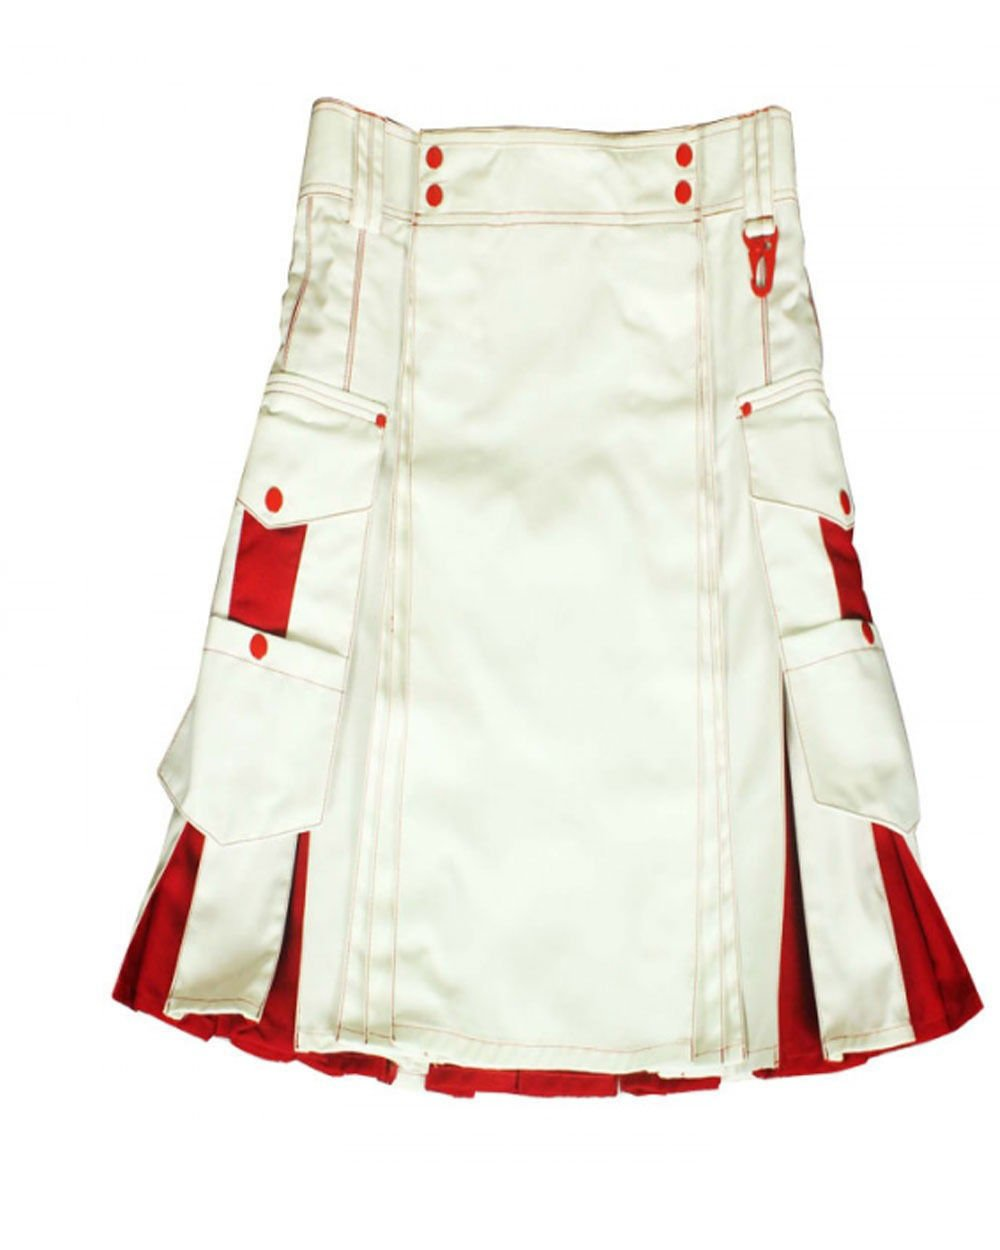 40 Size Handmade White & Red Cotton Kilt for Active Men, Hybrid Cotton Utility Deluxe Kilt